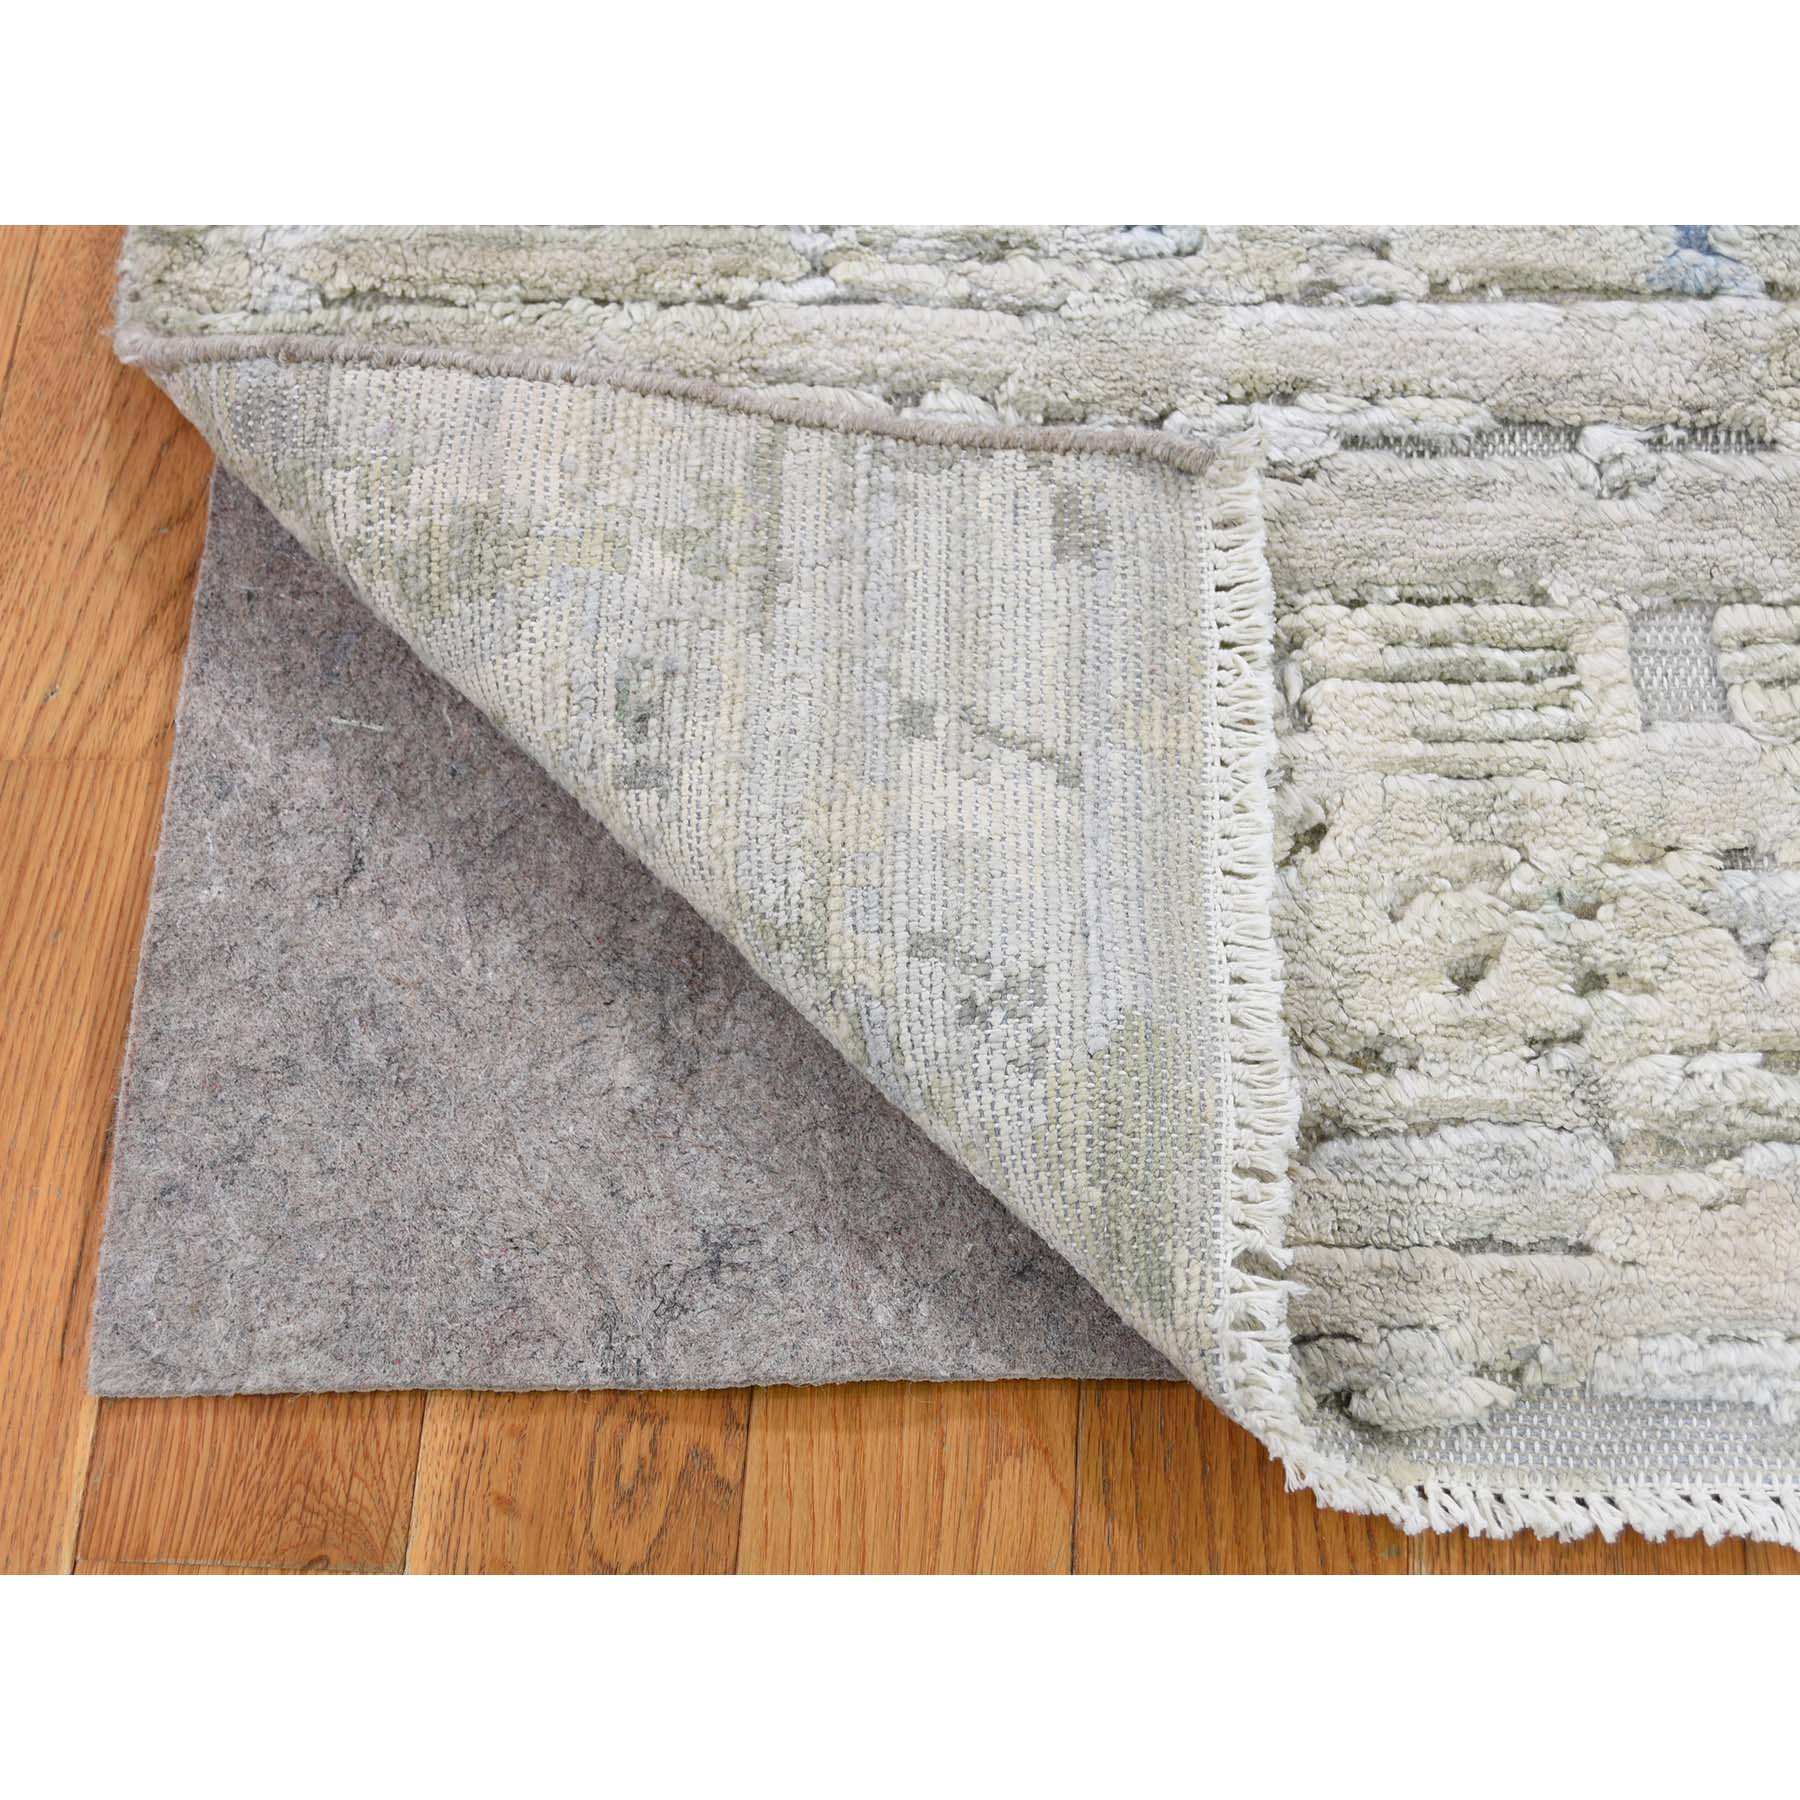 2-x2- Sampler Textured Pure Silk With Textured wool Hand-Knotted Oriental Rug